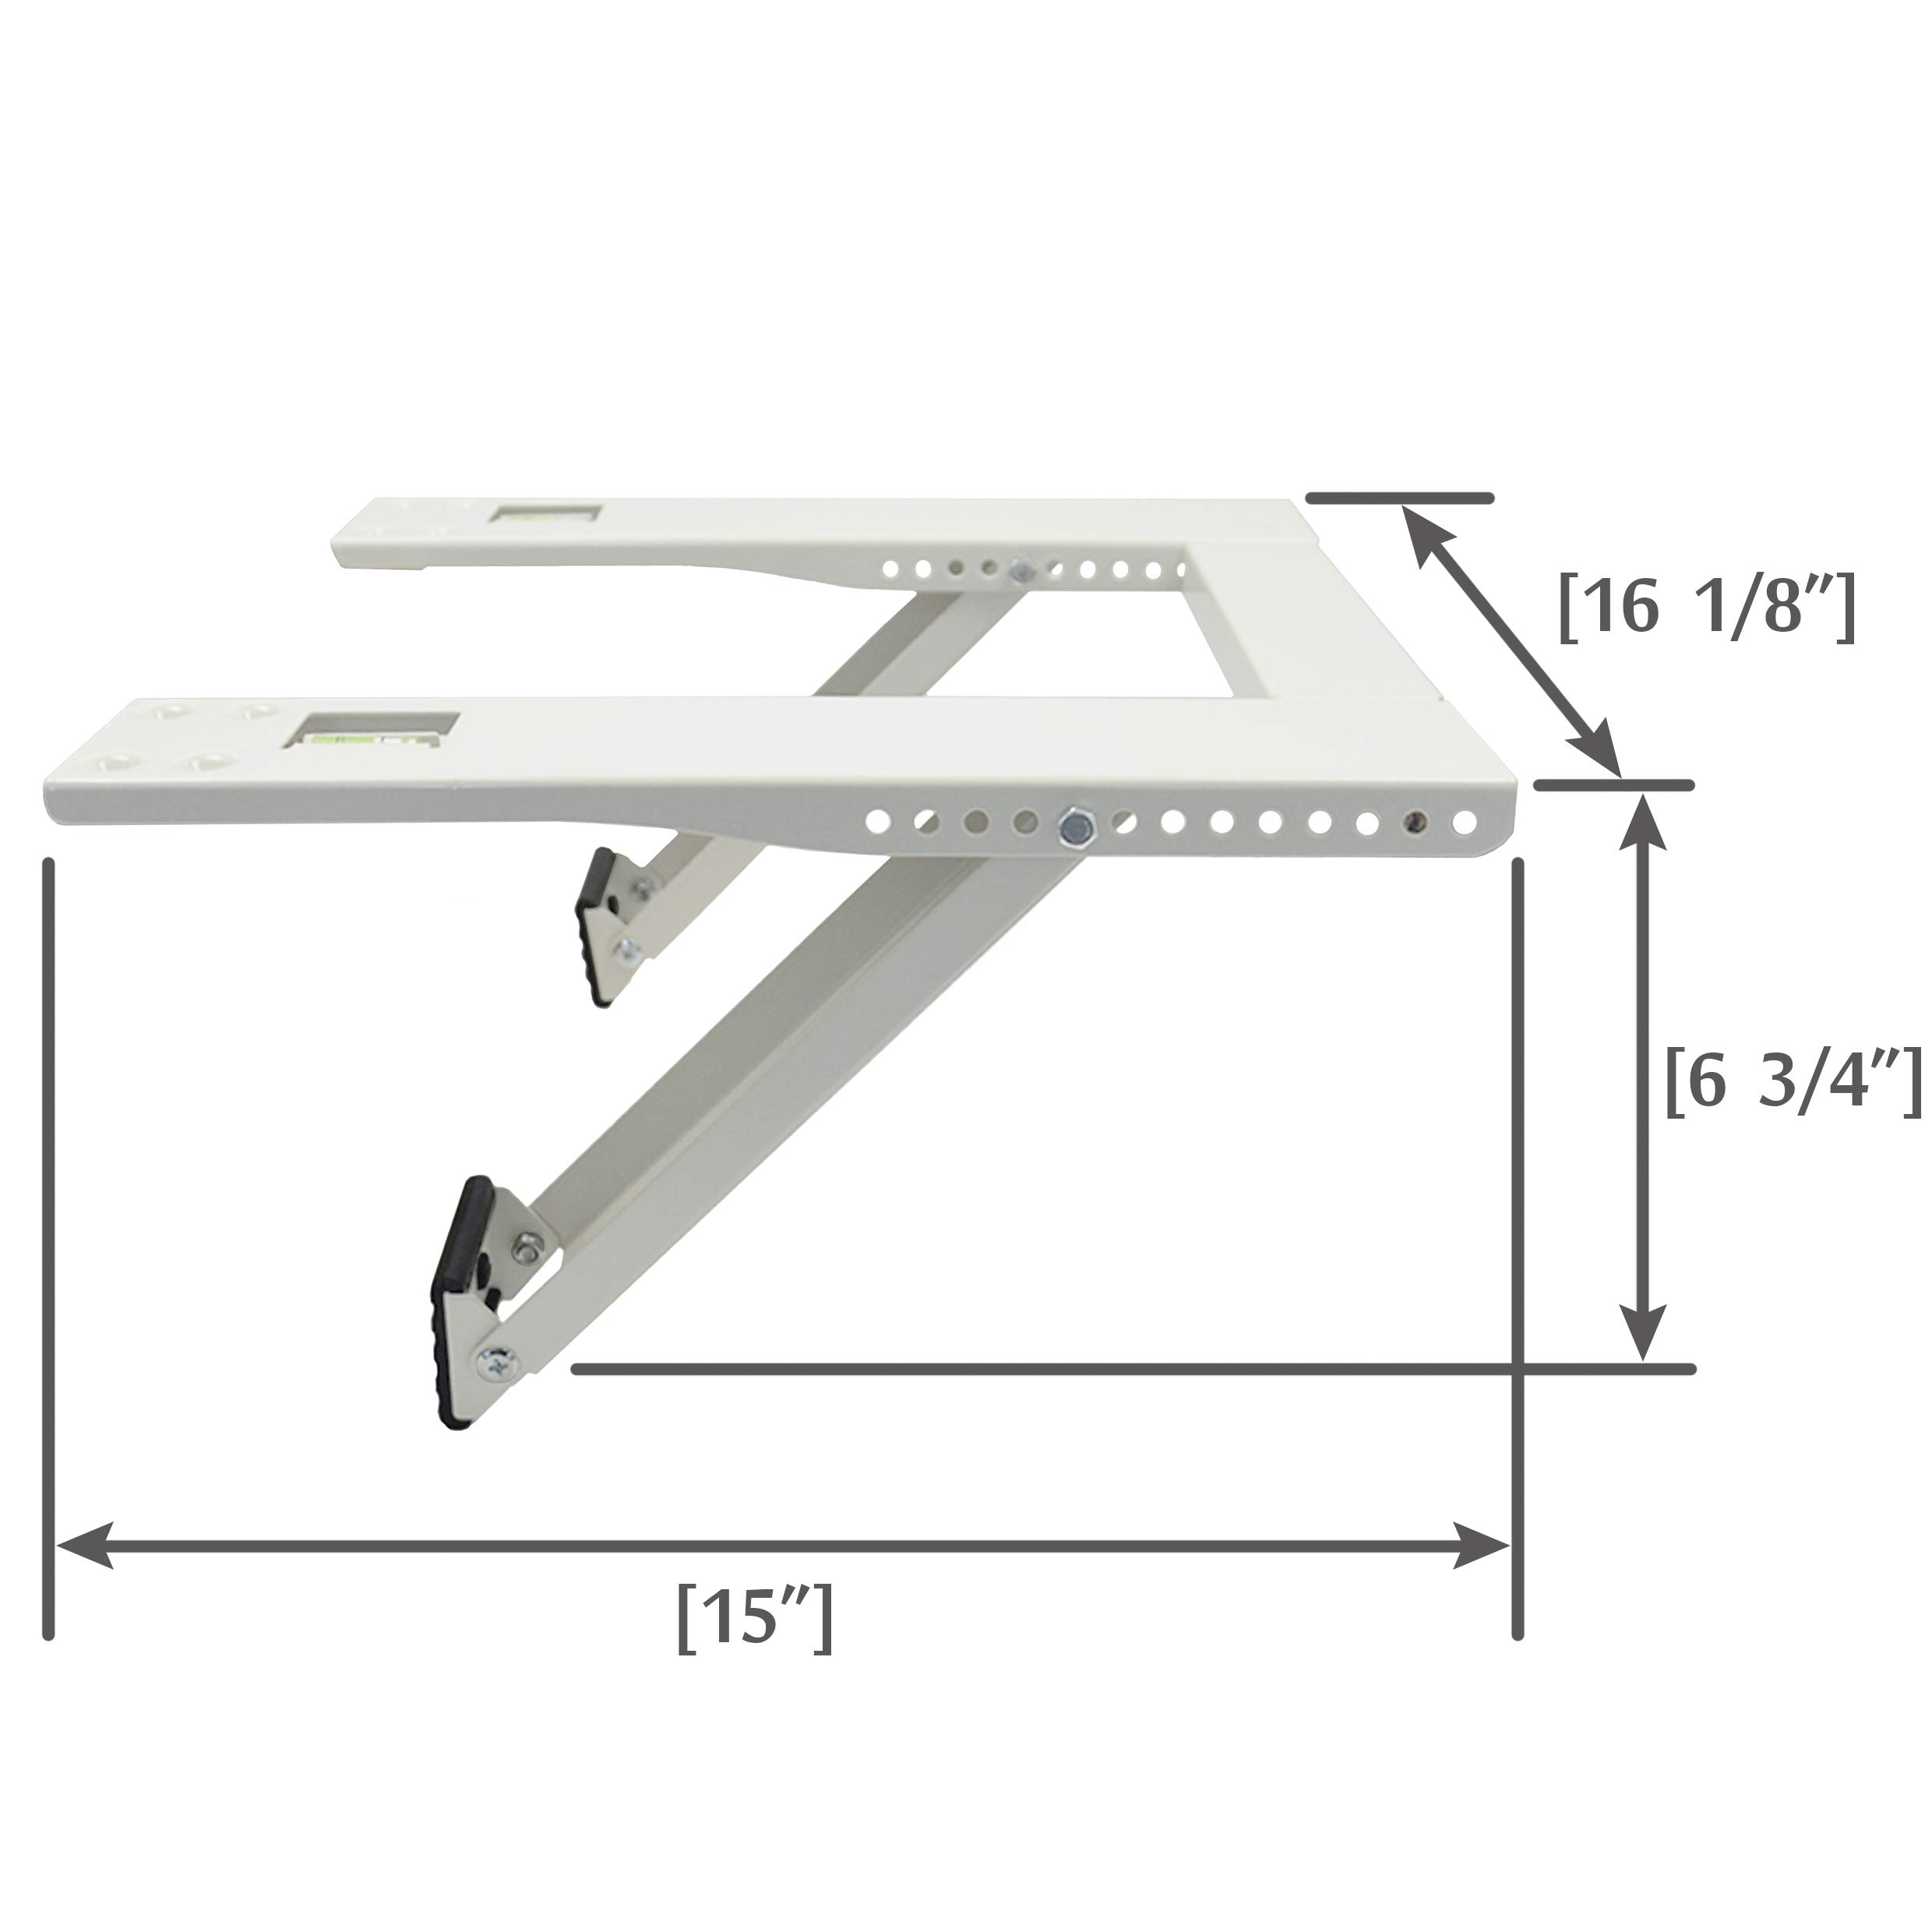 Qualward Air Conditioner Bracket Window AC Support Brackets - Heavy Duty with Two 15 inches Arms, Up to 105 lbs for 5000 to 12000 BTU Small A/C Units by Qualward (Image #4)